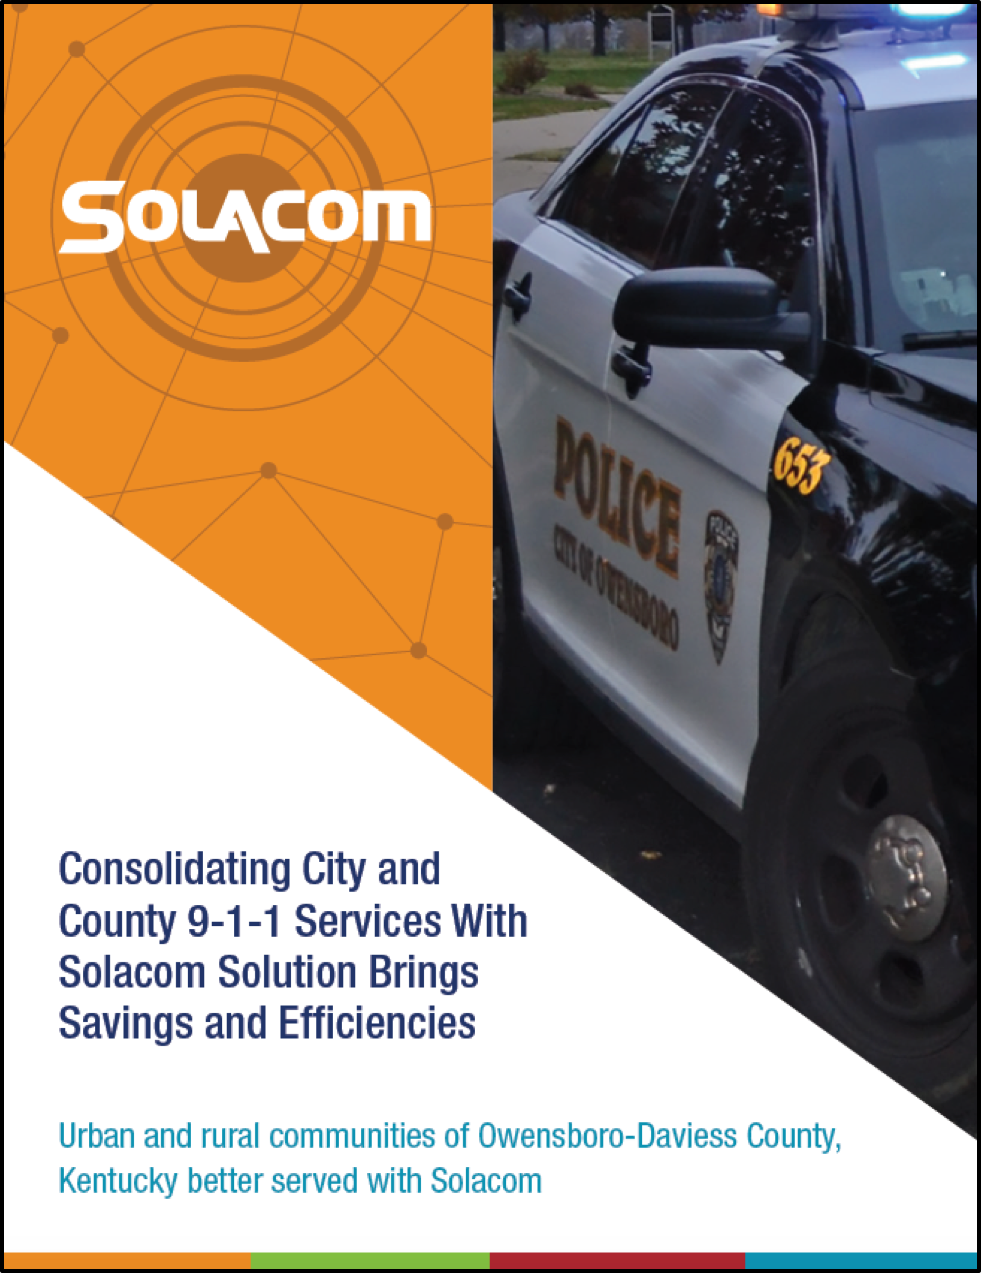 """Solacom """"Consolidating City and County 9-1-1 Services"""" Case Study"""